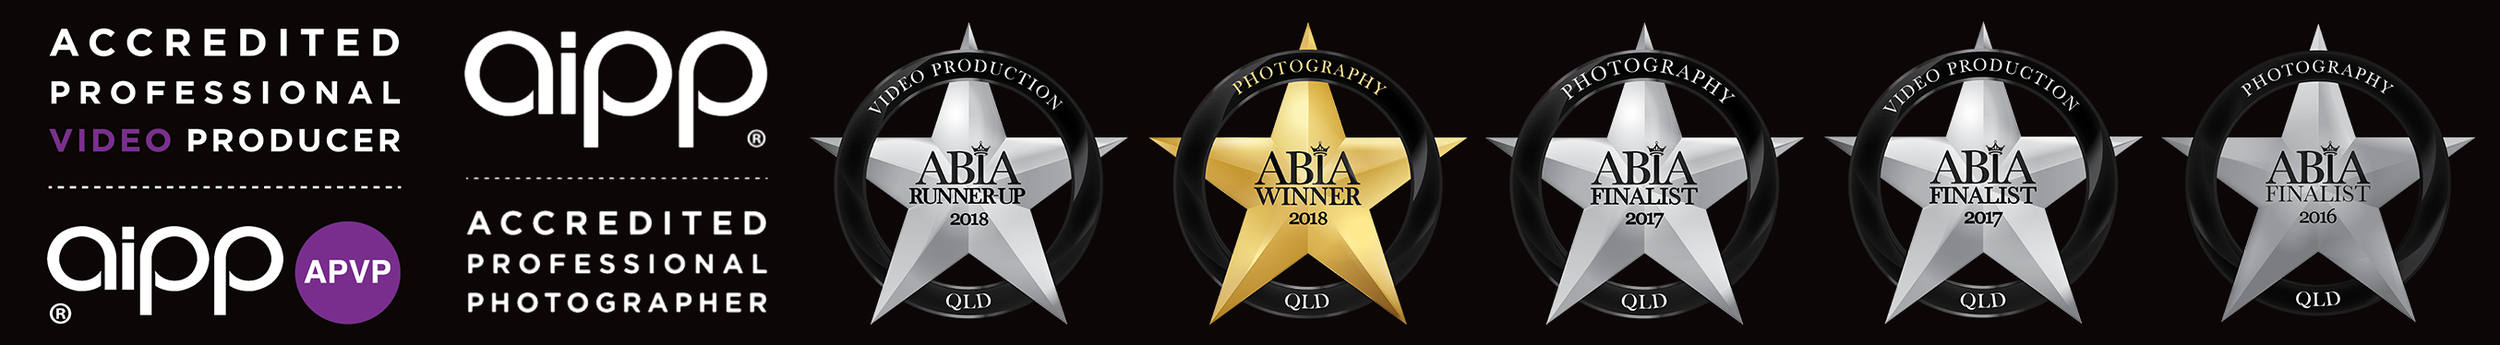 AIPP Accredited and Winner of ABIA Awards Wedding Photography